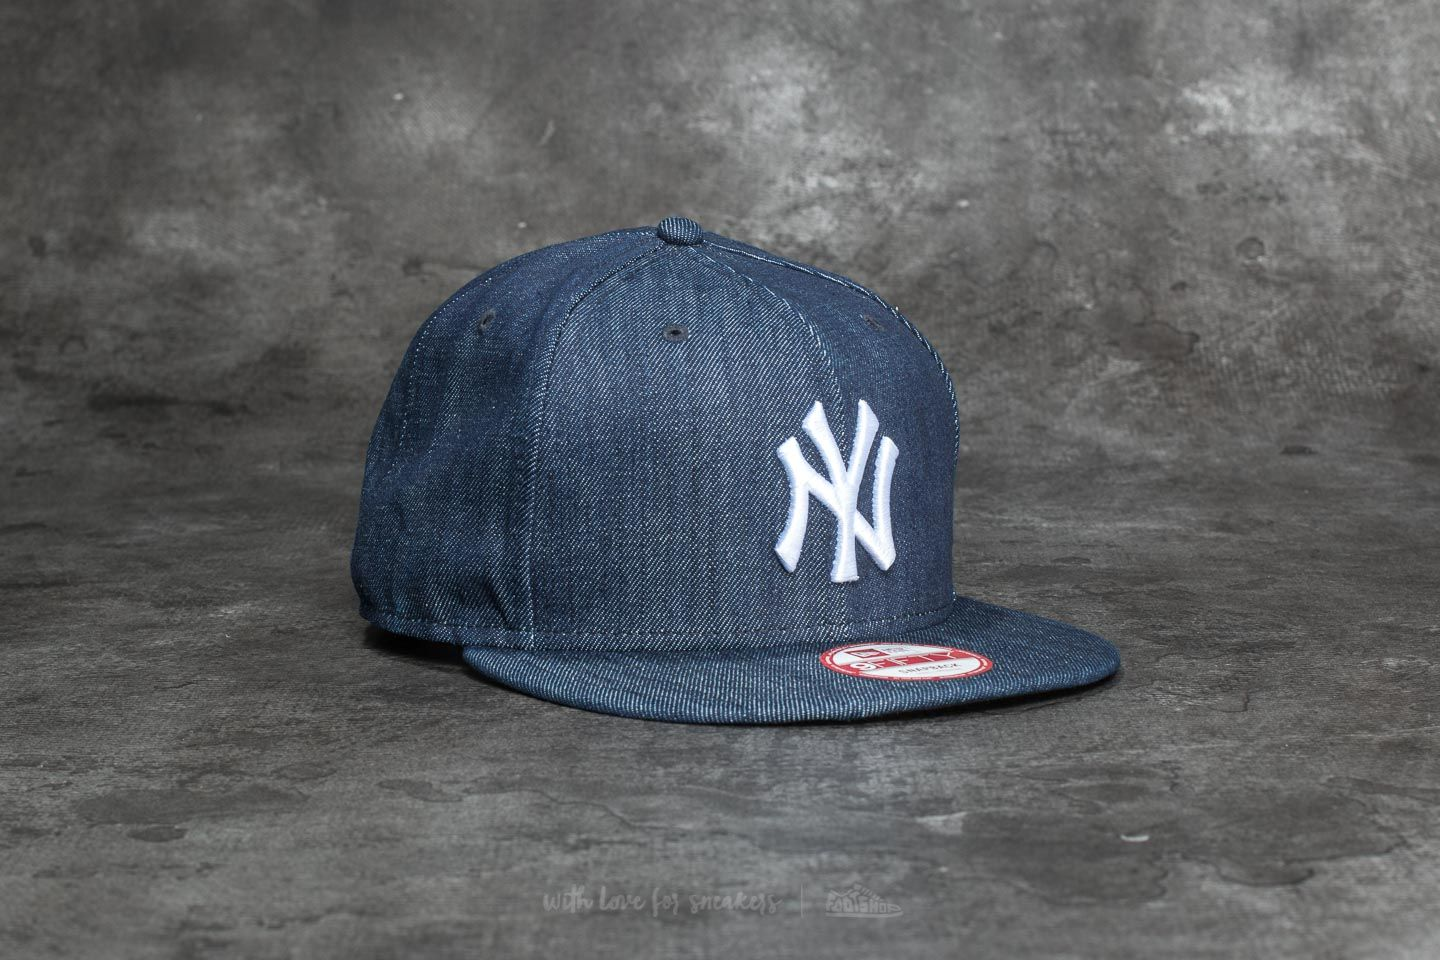 6683d99bce5 New Era 9Fifty Denim Basic New York Yankees Cap Navy  White ...